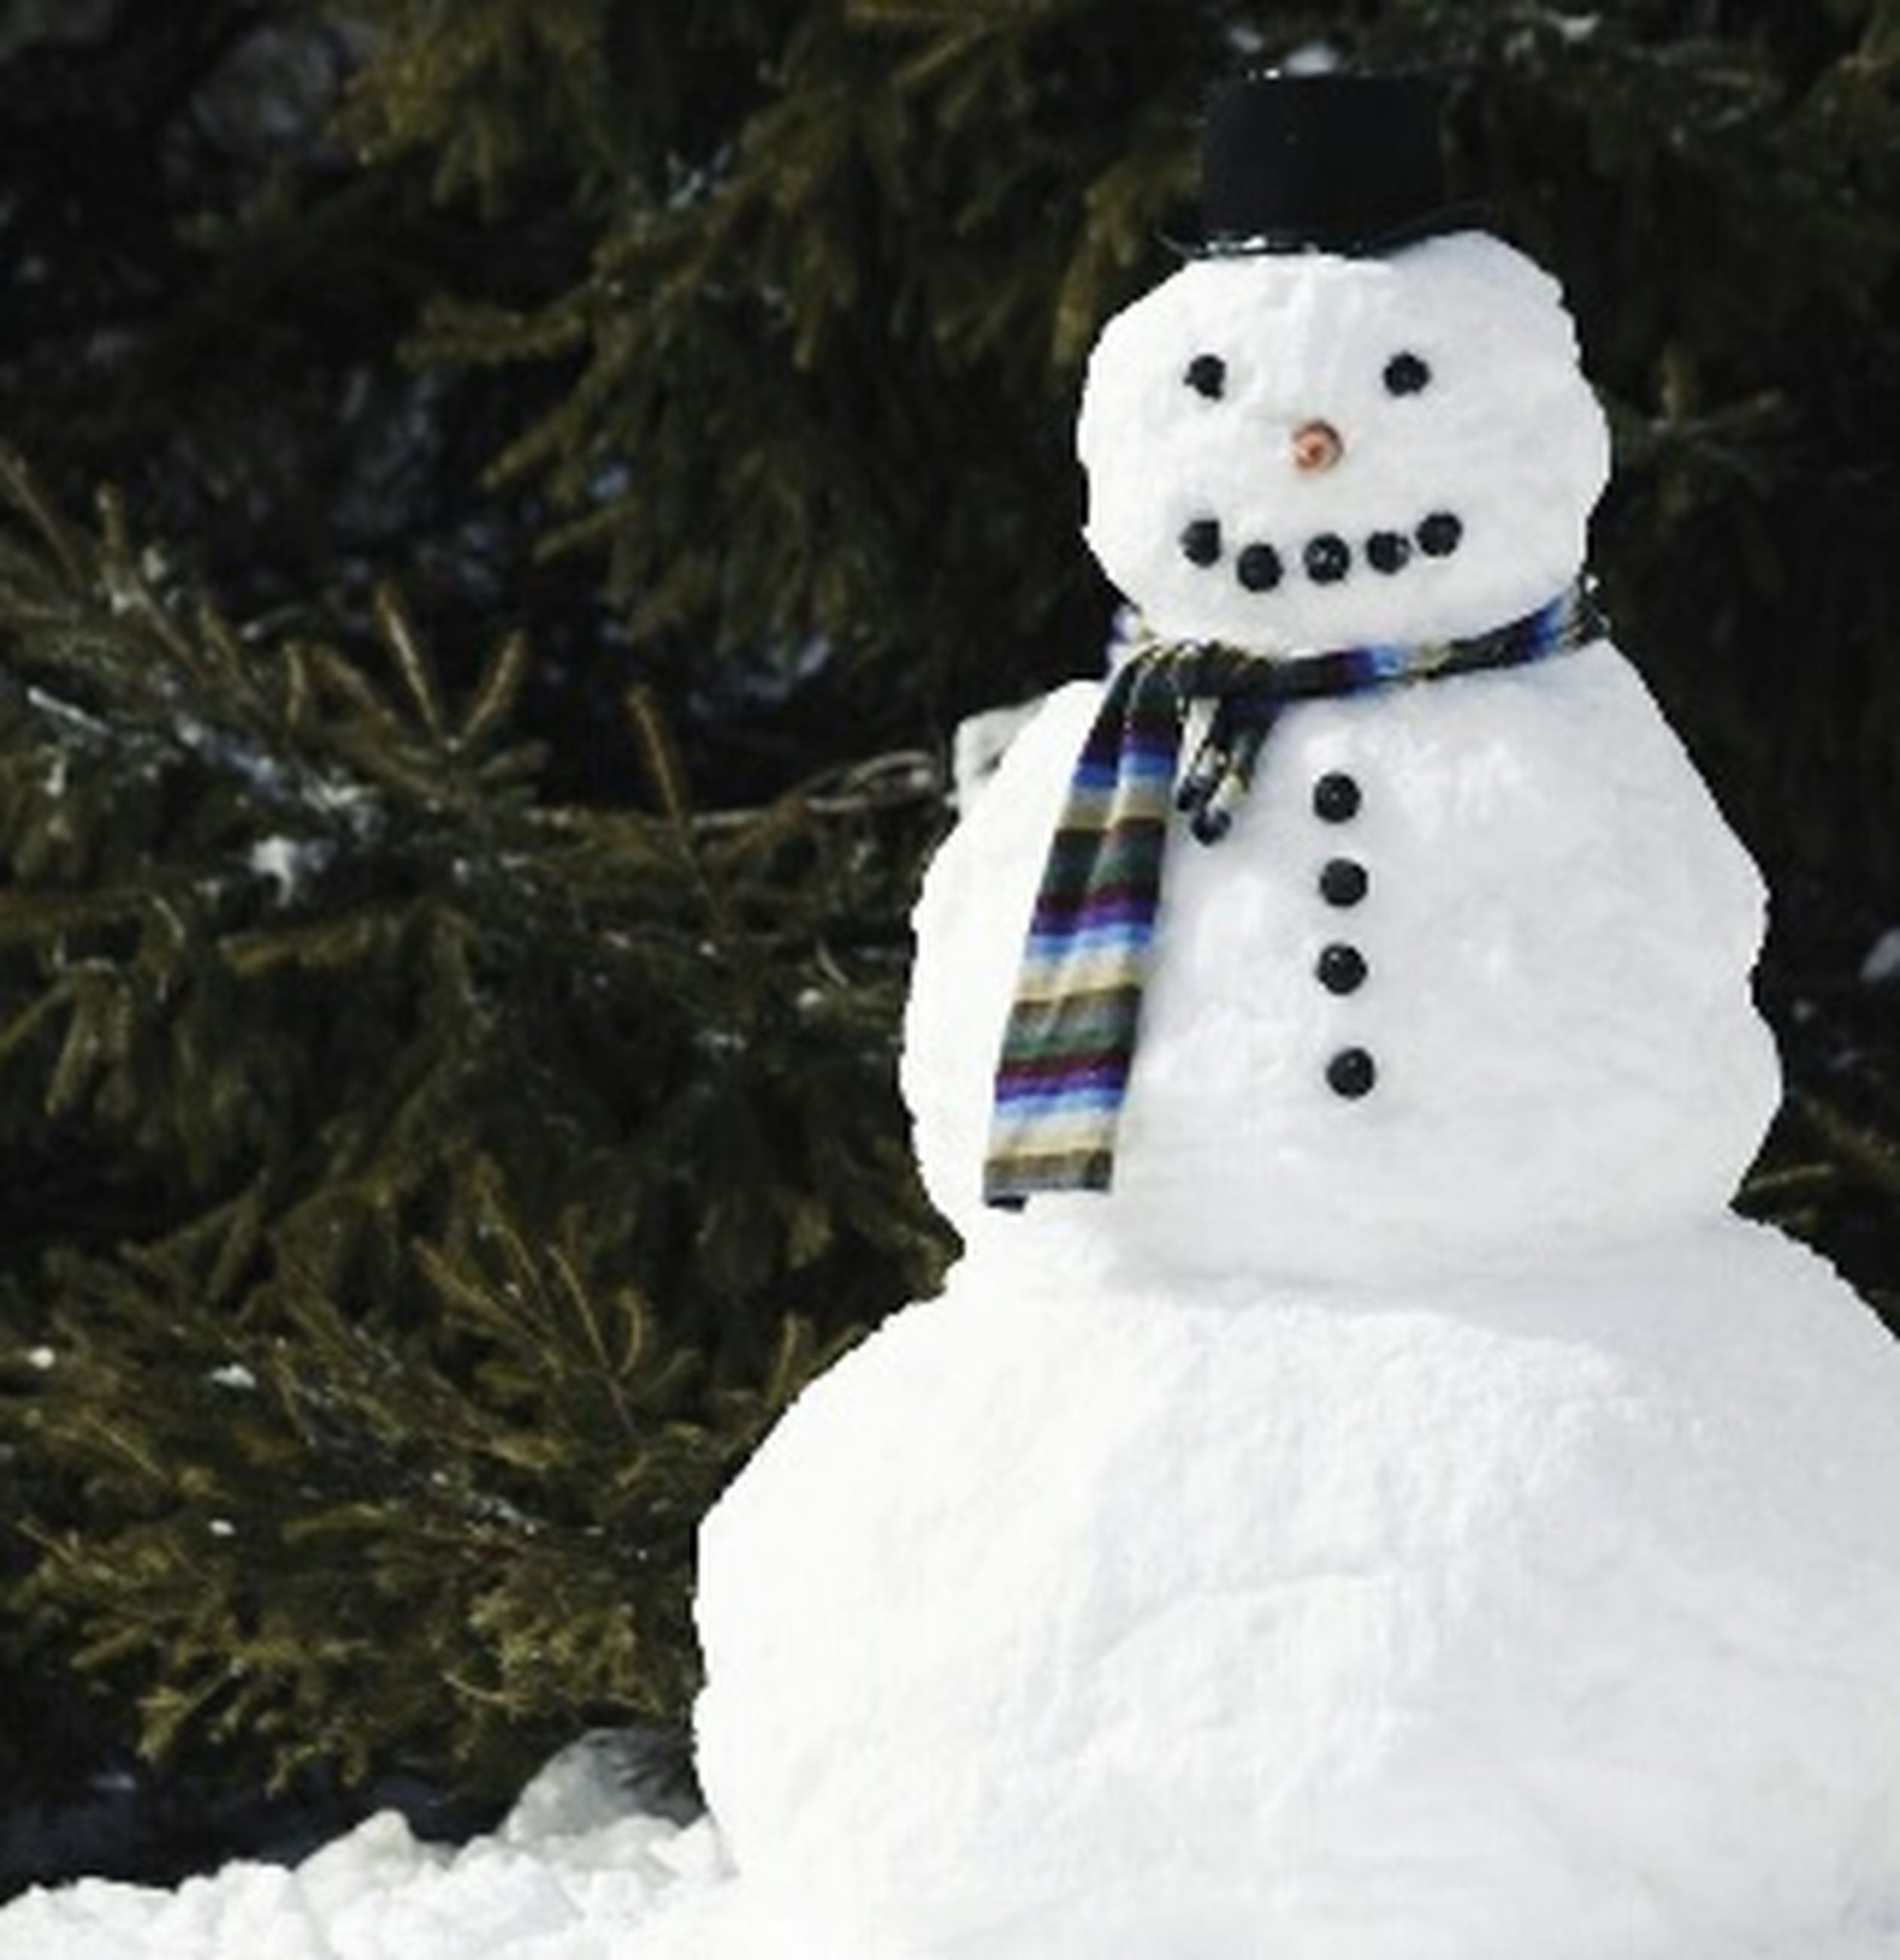 human representation, creativity, art and craft, toy, art, white color, animal representation, focus on foreground, sculpture, statue, close-up, snowman, figurine, religion, winter, snow, white, day